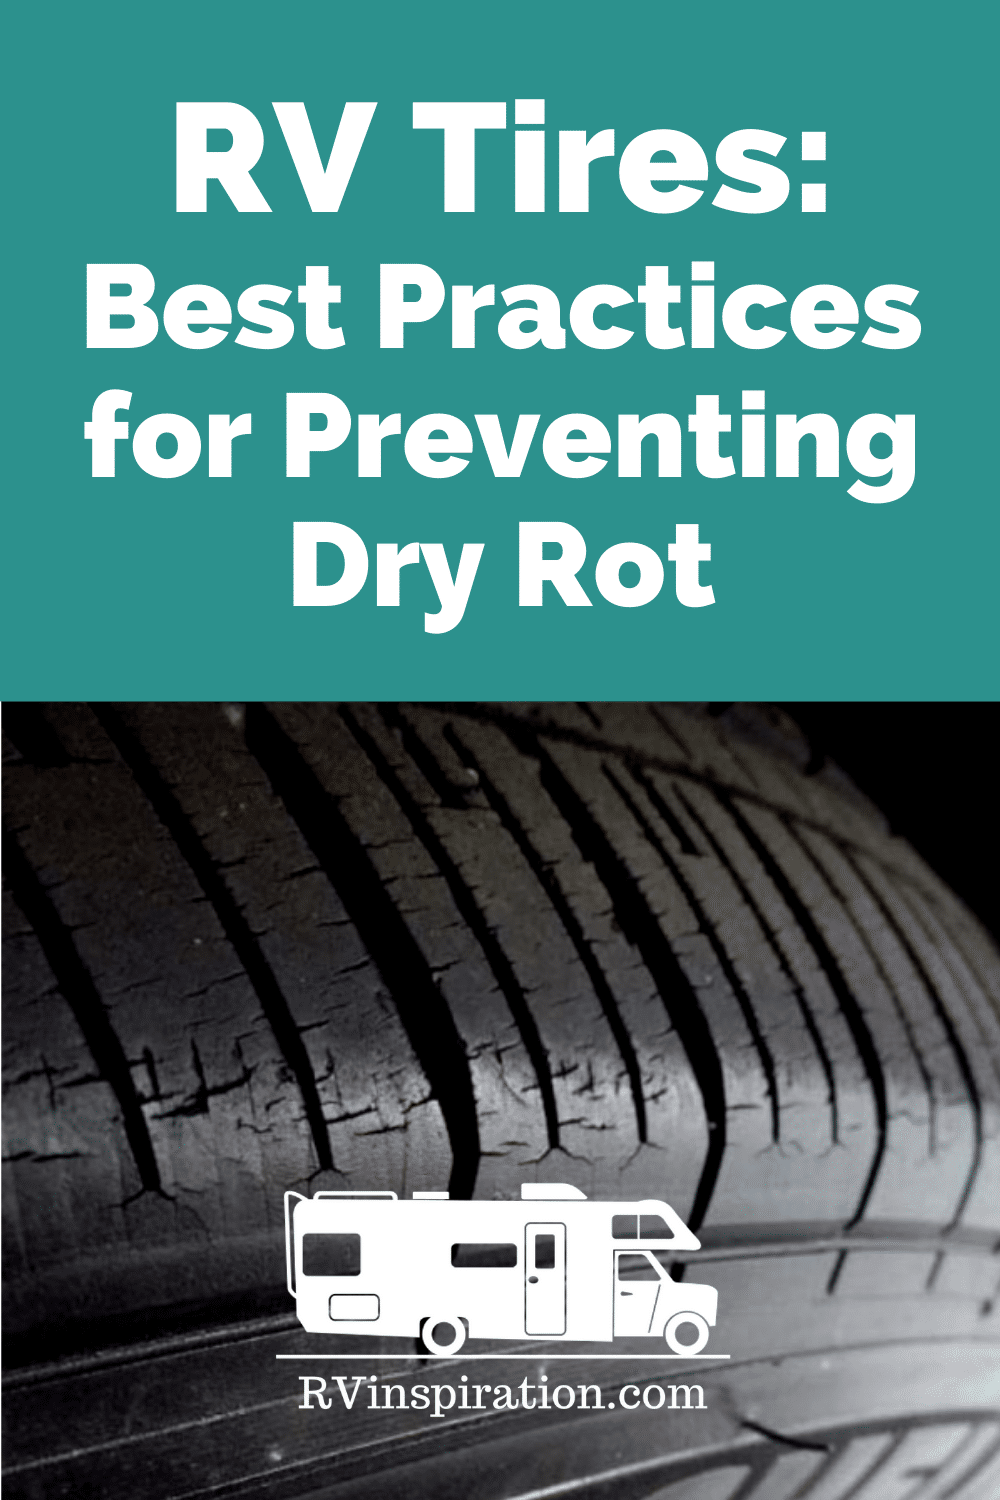 How to prevent dry rot and invisible tire damage when your RV is parked in long term storage or when you're living full time in a stationary RV during extremely hot or cold weather | RVinspiration.com